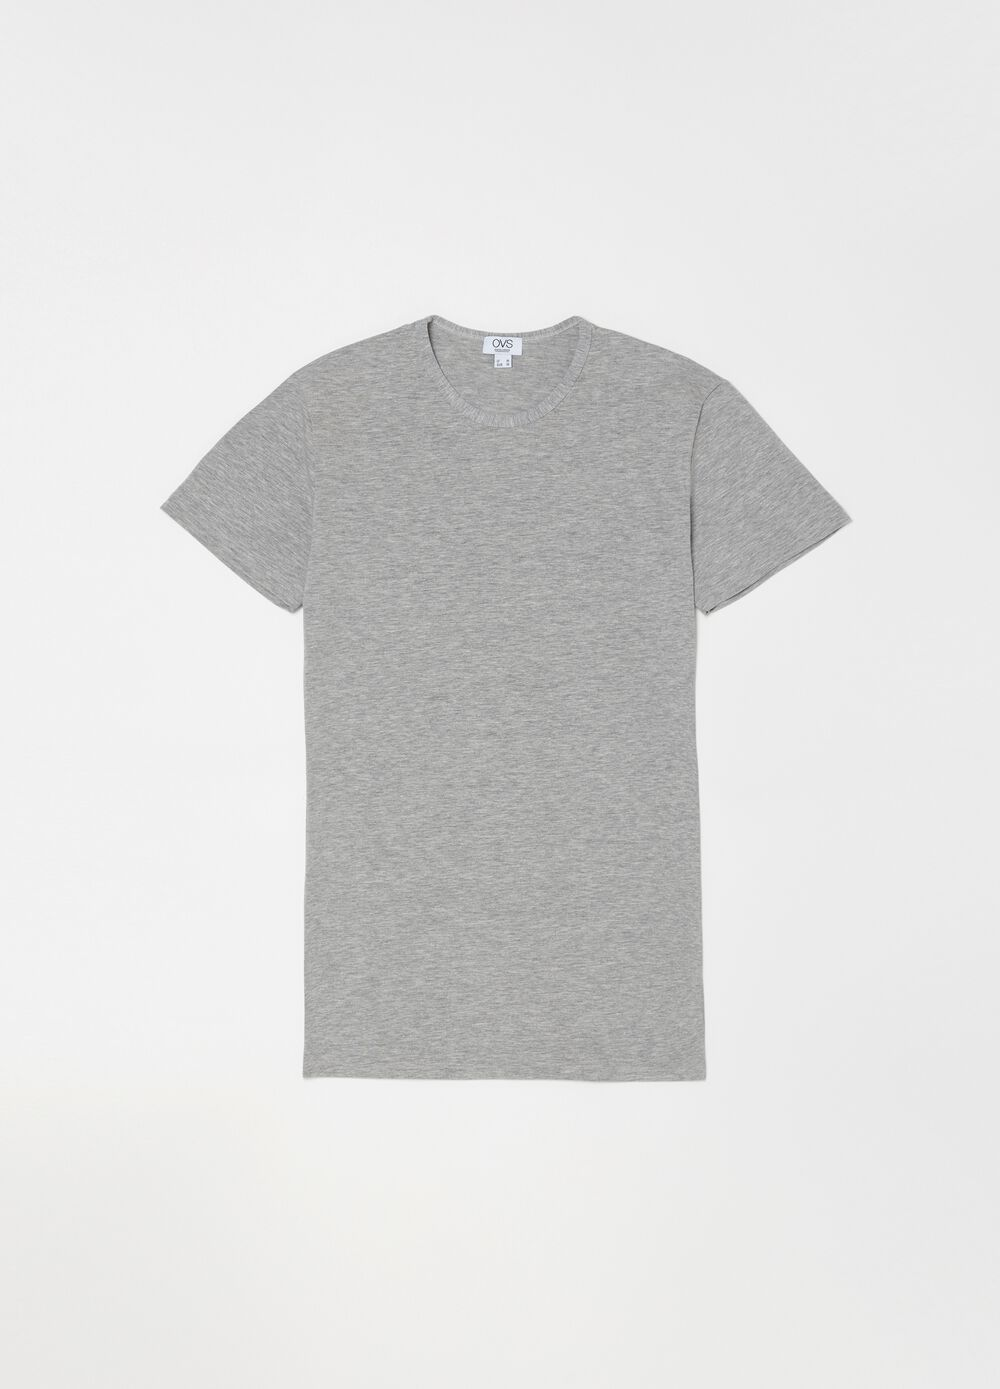 Stretch undershirt with round neck